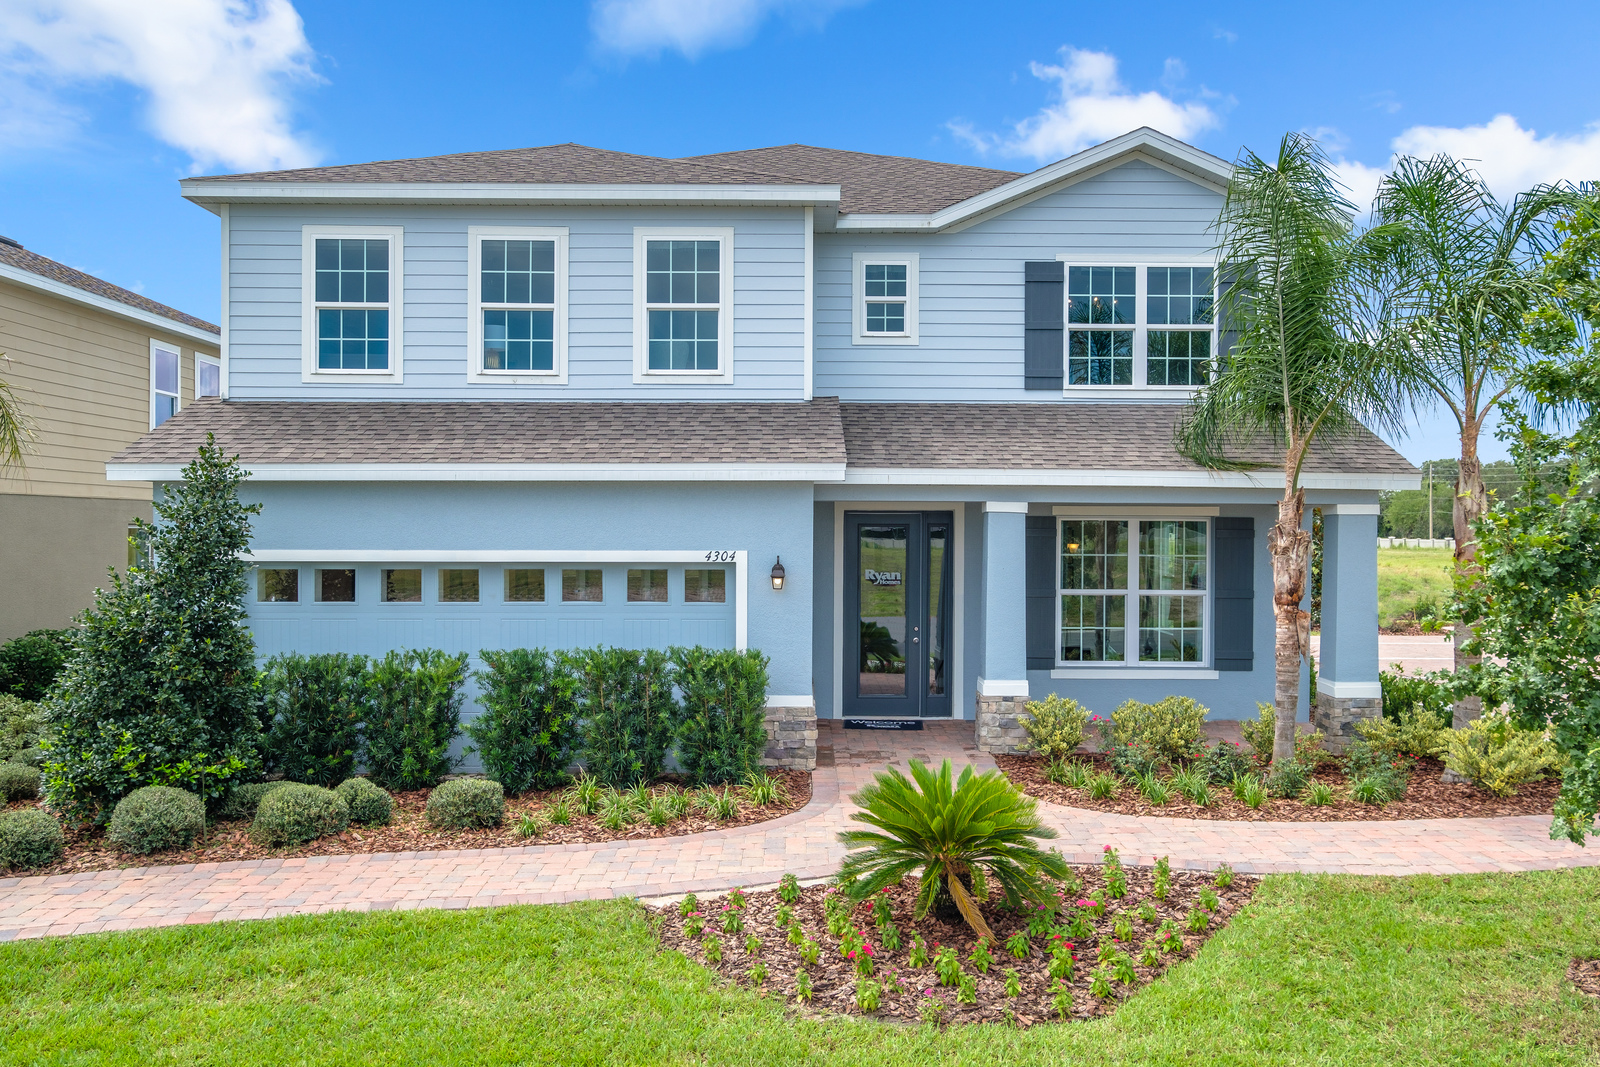 New Homes For Sale At Creekside In Kissimmee Fl Within The Osceola